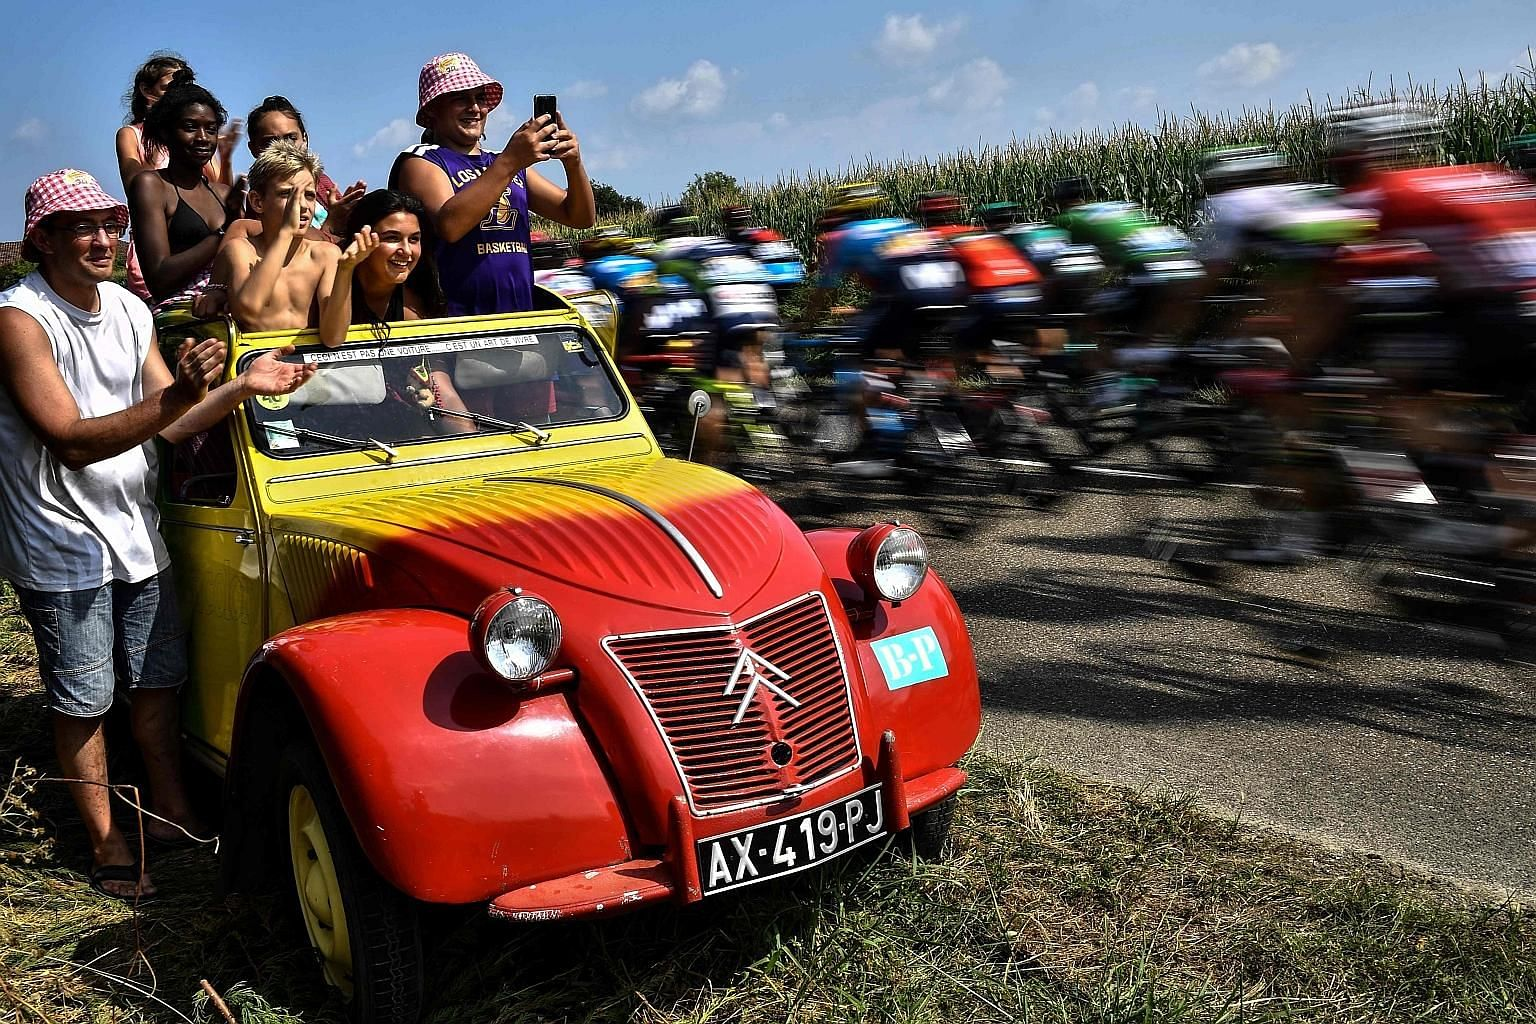 Fans lining the Tour de France route to cheer the peloton on, such as in this 2018 photo, is an enduring image of the event. PHOTO: AGENCE FRANCE-PRESSE